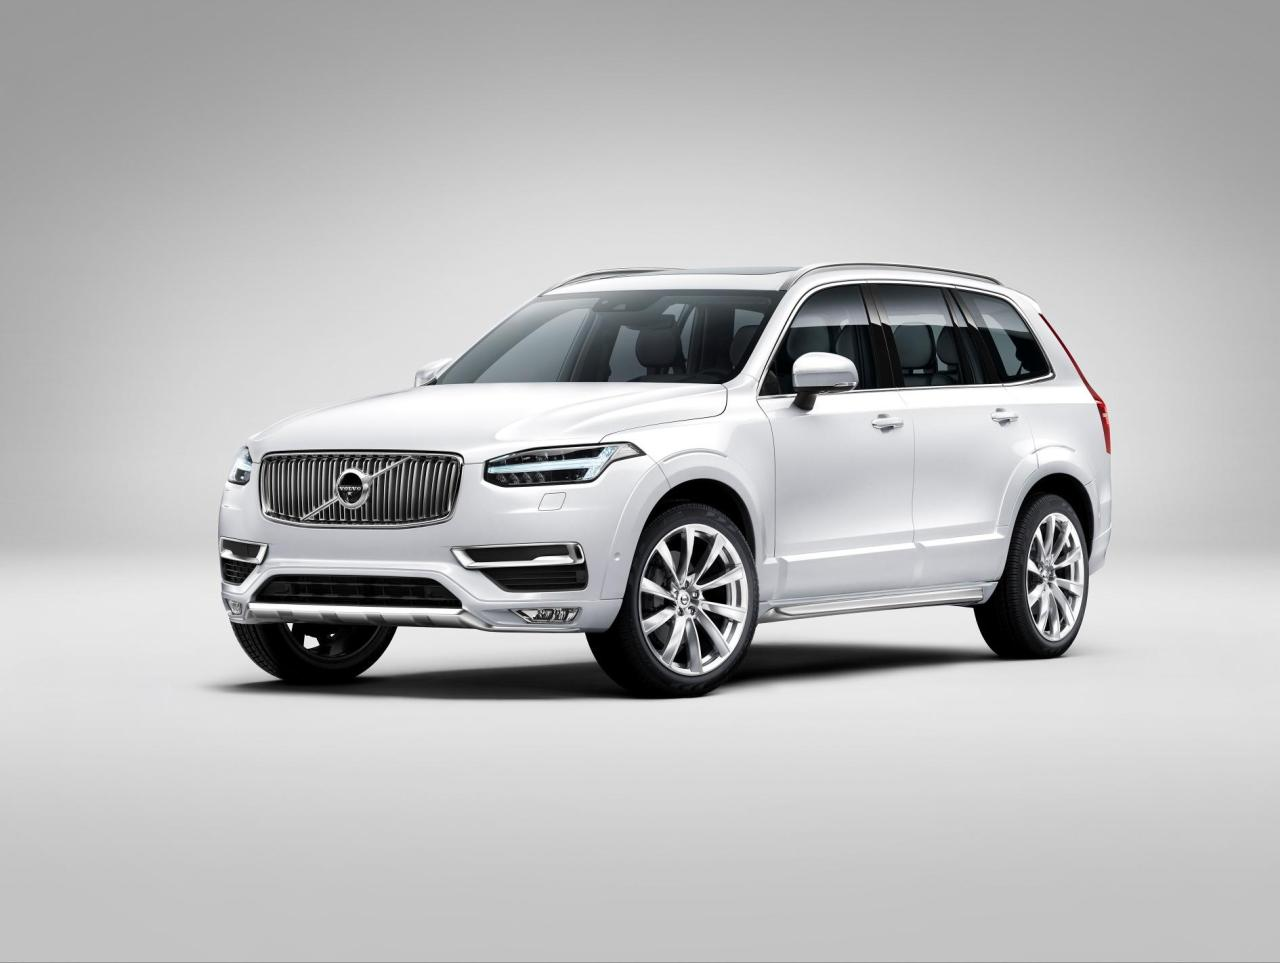 The all-new 2014 Volvo XC90.